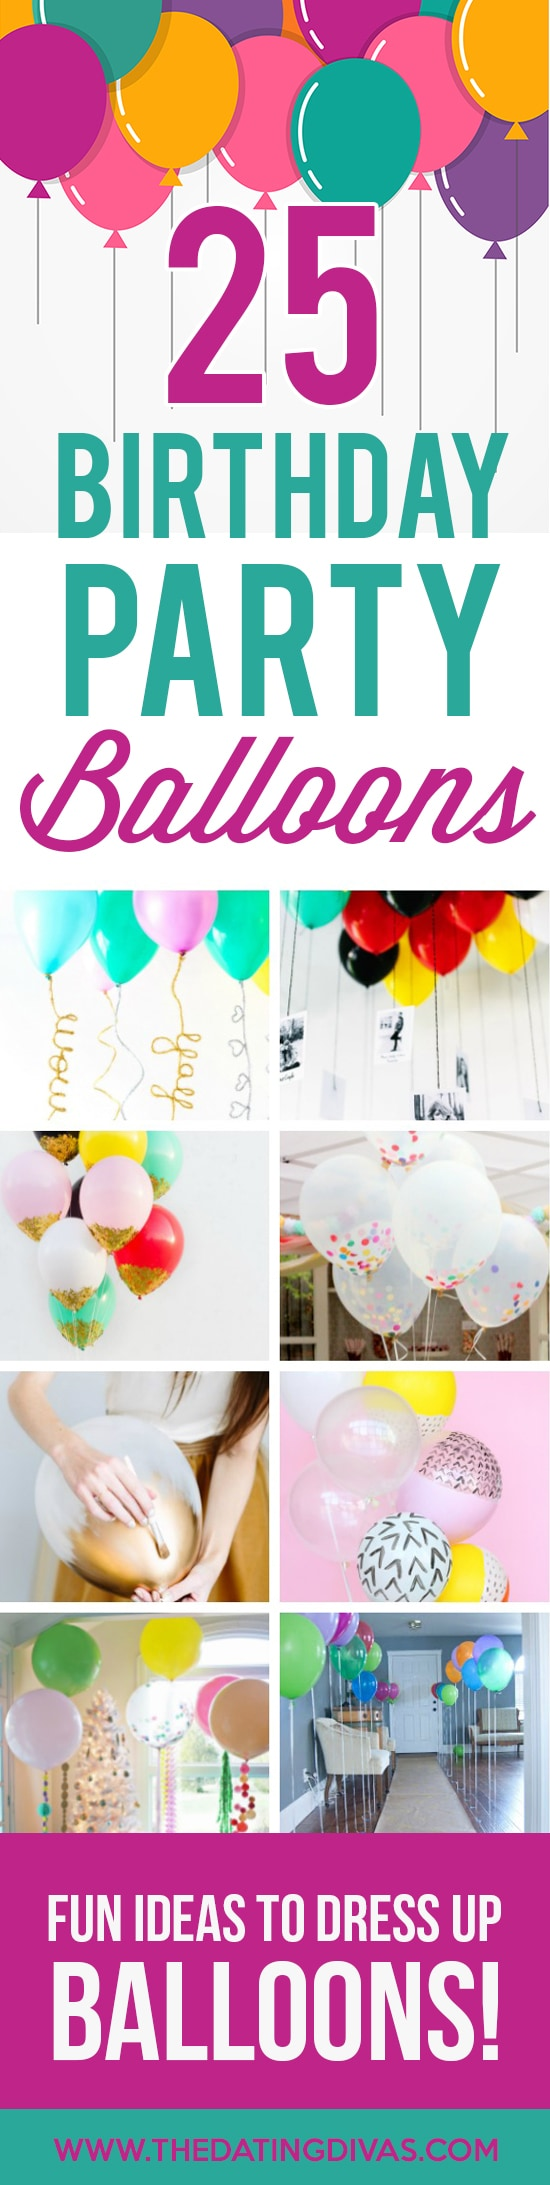 25 Creative Birthday Party Balloon Ideas banner